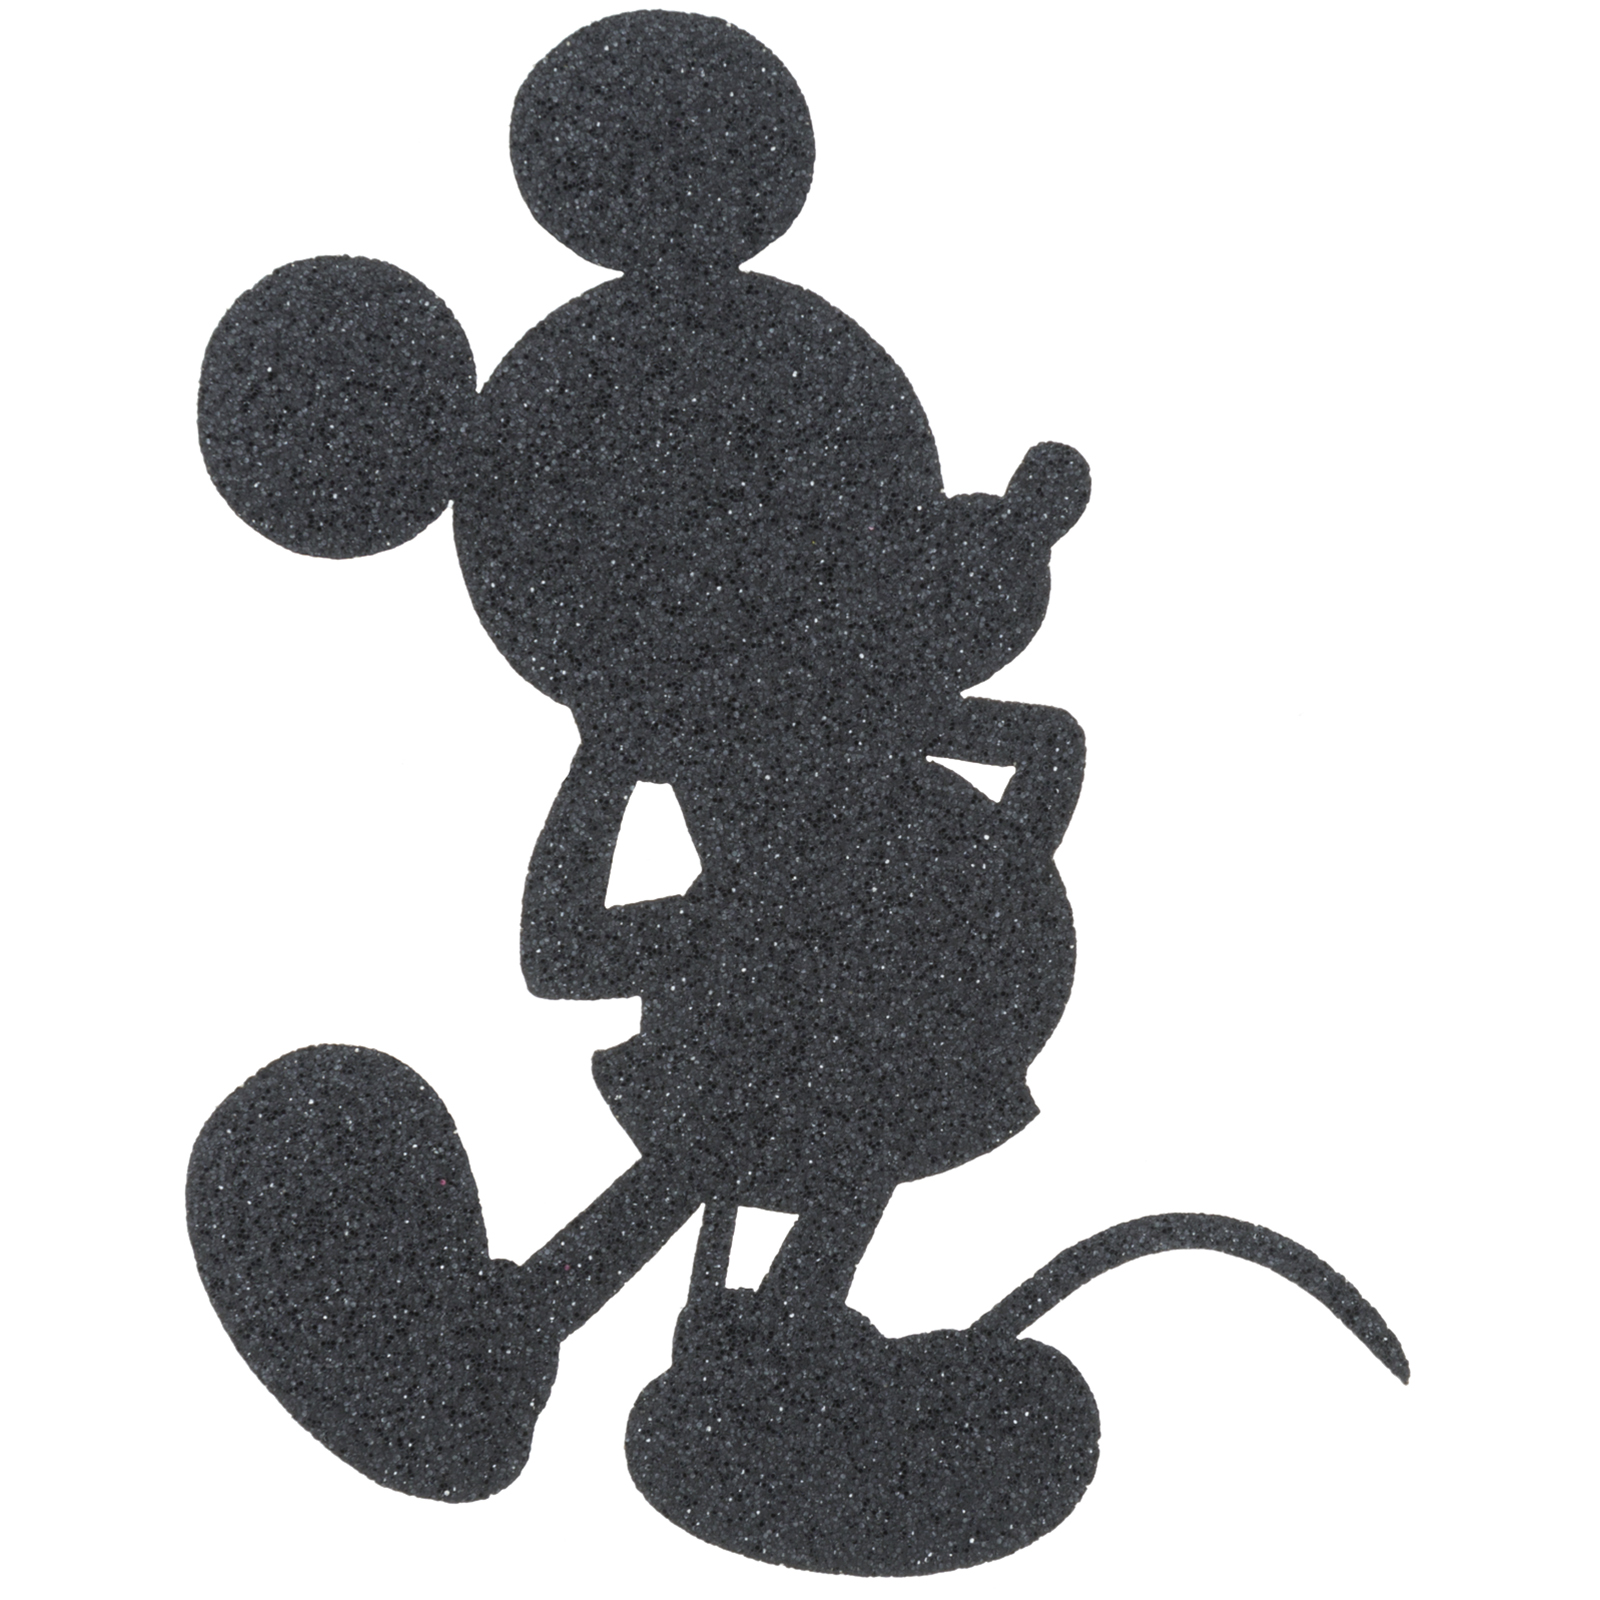 1600x1600 Find The Mickey Mouse Silhouette Small Iron On Applique